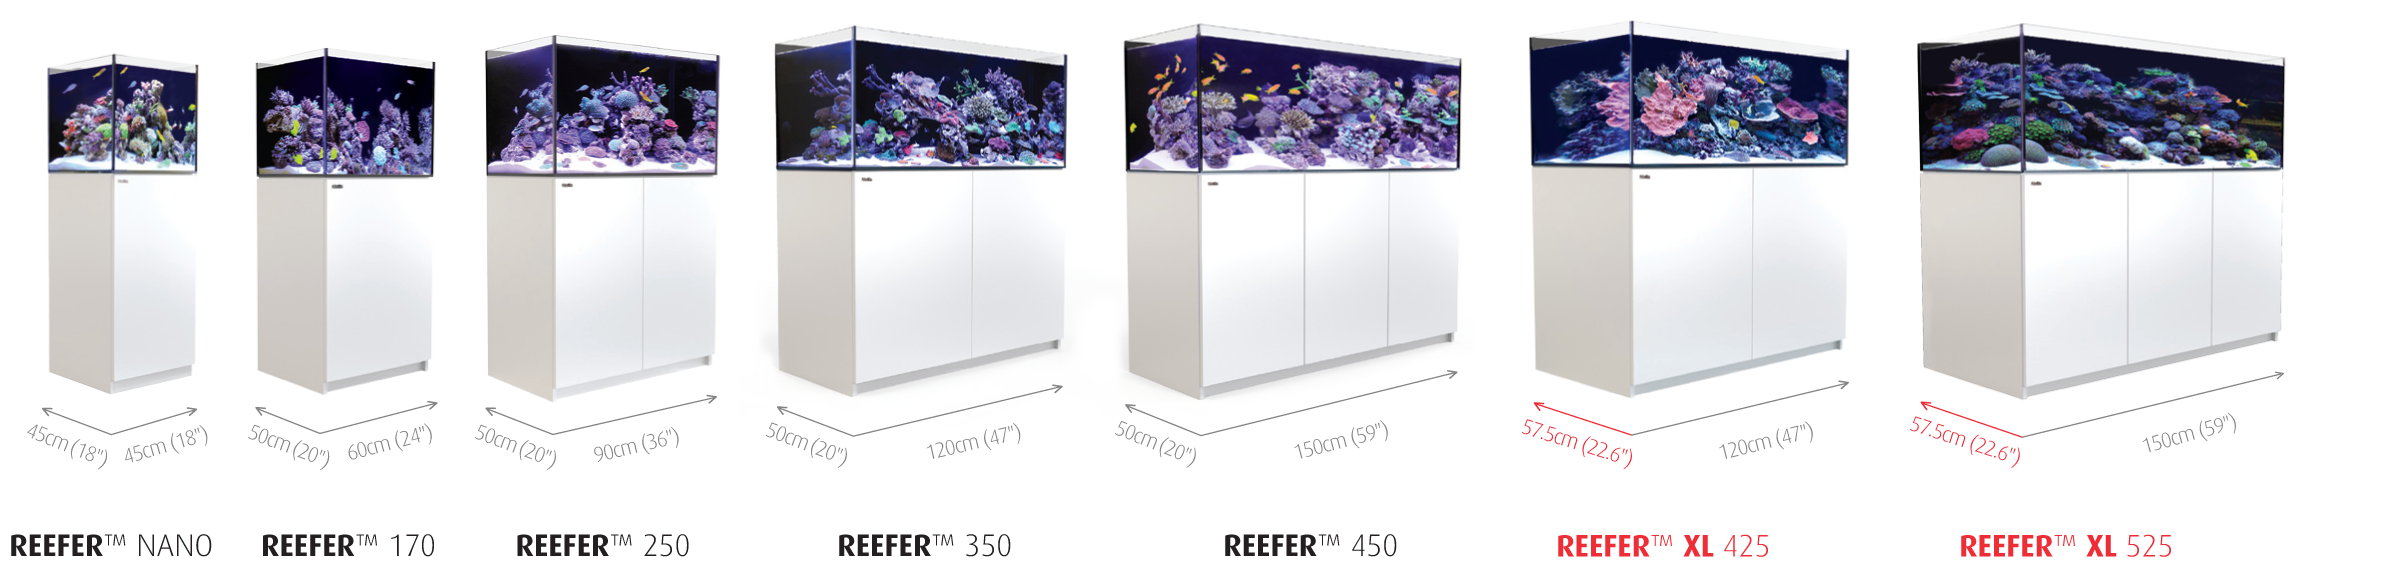 REEFER XXL 750 Glass Aquarium